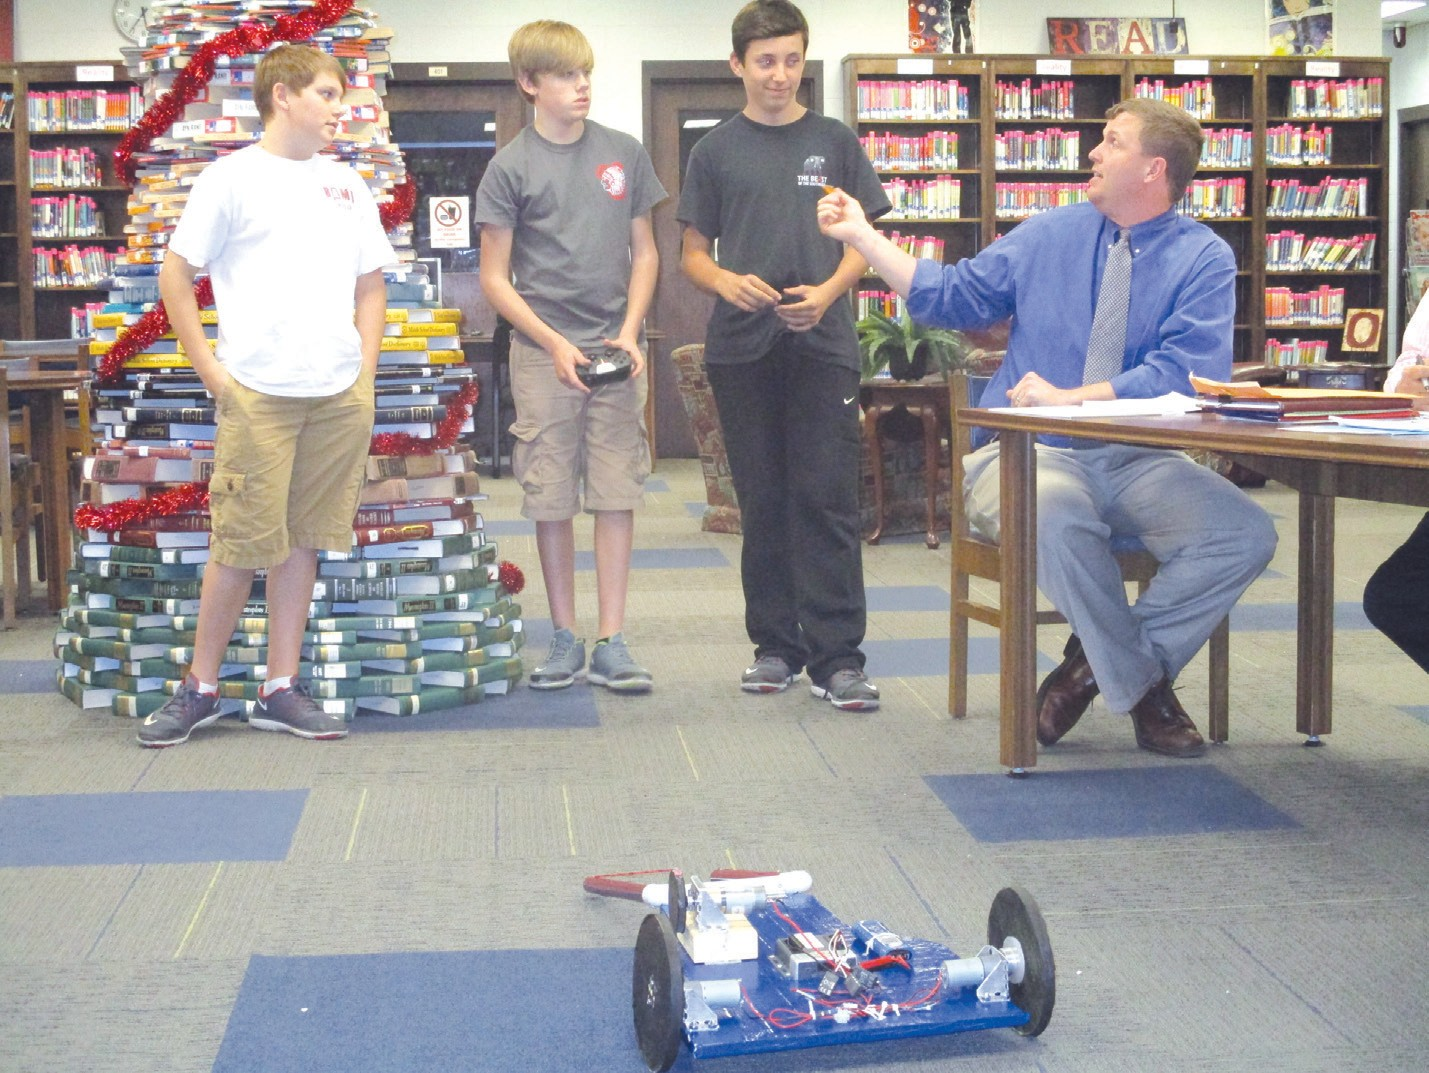 The Oneonta Robotics Team, made up (from left) of Cole Farmer, Caden Evans, and Mason Stephens showed and told the school board about their award-winning device built as a part of the Regional Best Robotics Competition. Under mentor Brad Mitchell's direction, the team won the Best Newcomer award at the event.